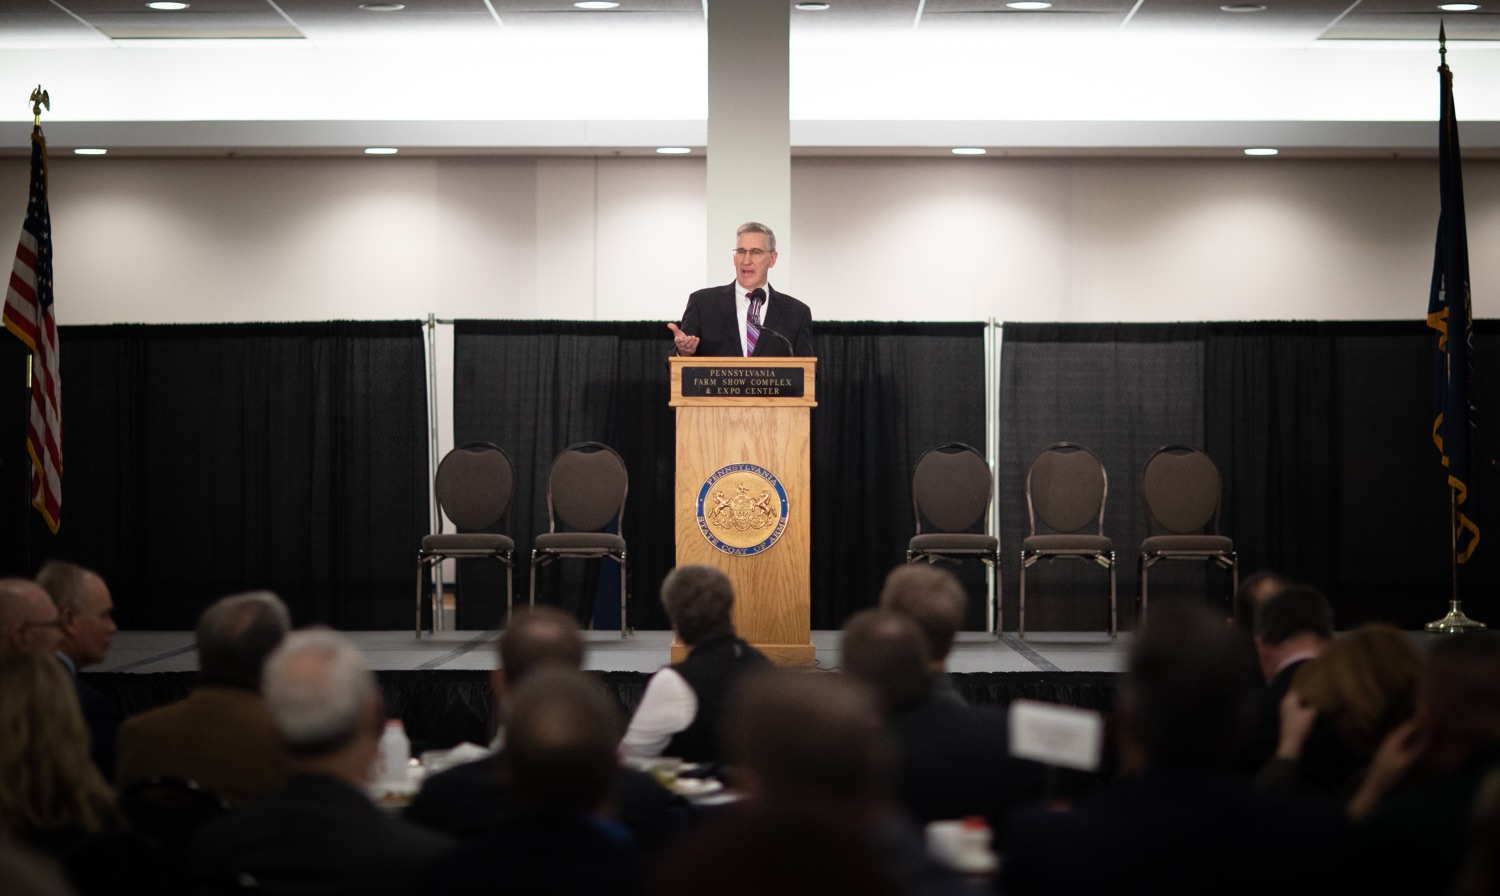 "<a href=""https://filesource.wostreaming.net/commonwealthofpa/photo/17650_agric_public_officials_day_dz_018.jpg"" target=""_blank"">⇣ Download Photo<br></a>Agriculture Secretary Russell Redding speaks at Public Officials Day.  Addressing nearly 800 public officials at the Pennsylvania Farm Show today, Agriculture Secretary Russell Redding announced the opening of the last grant program made possible by the 2019 PA Farm Bill. The $1 million Farm Vitality Grant Program aims to enhance the long-term health and vitality of Pennsylvanias family farms. Harrisburg, PA  January 08, 2020"